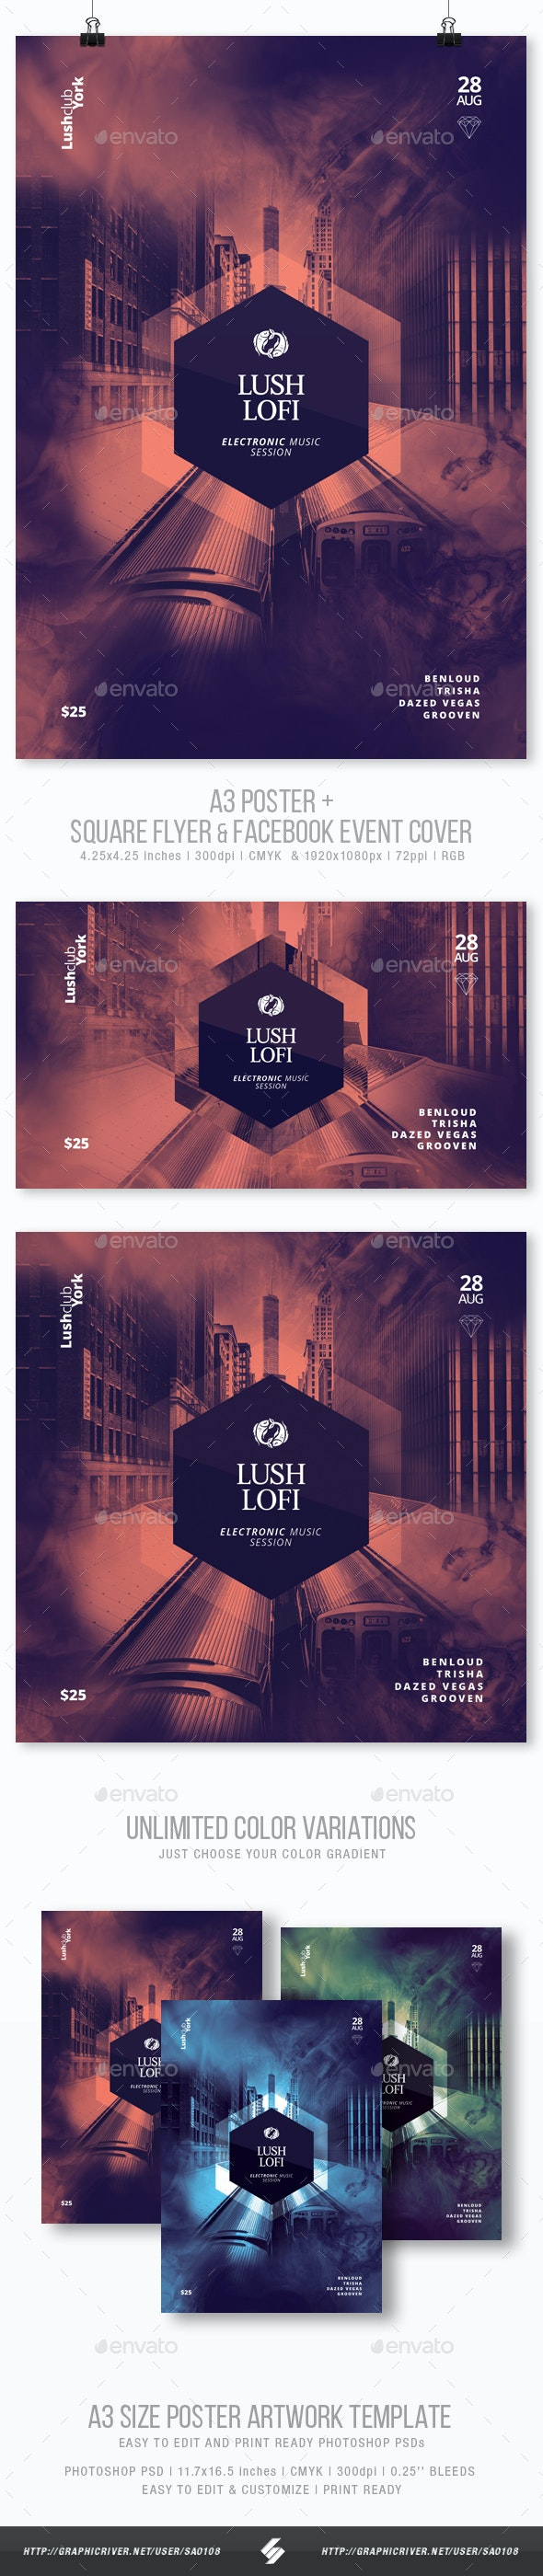 Lush Lofi - Minimal Party Flyer / Poster Template A3 - Clubs & Parties Events